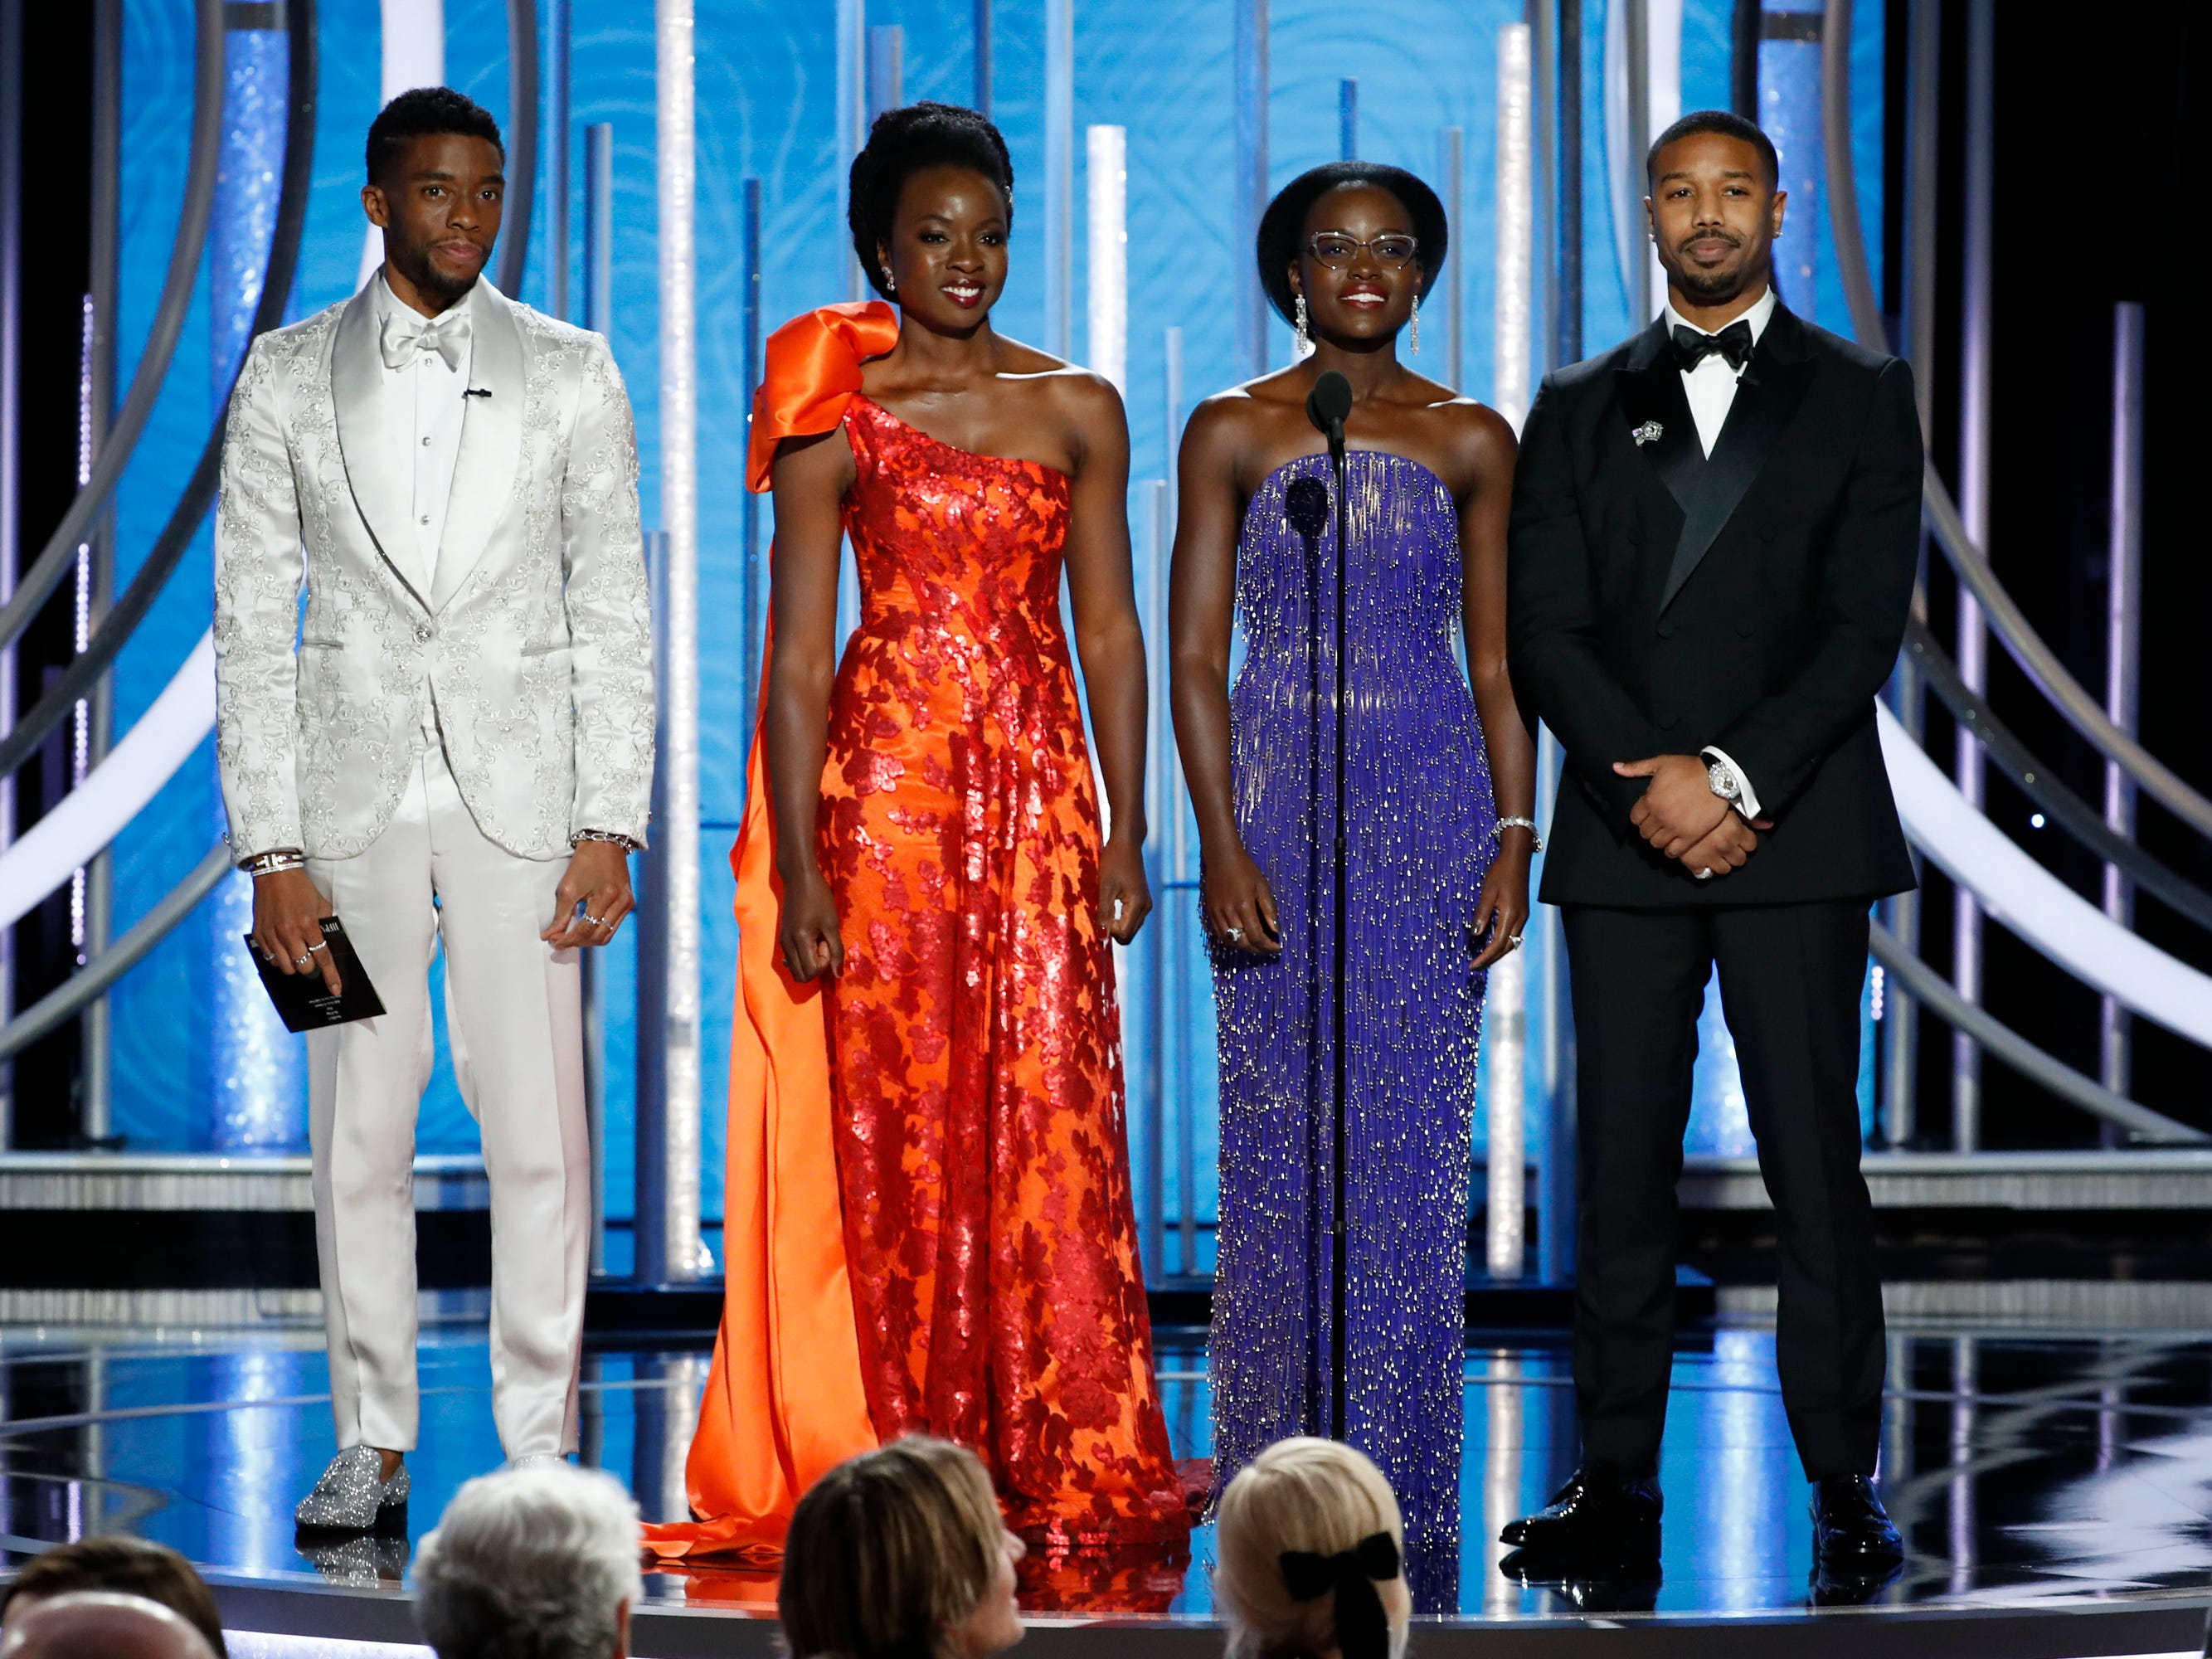 Presenters Chadwick Boseman, Danai Gurira, Lupita Nyong'o and Michael B. Jordan speak onstage during Golden Globe Awards.